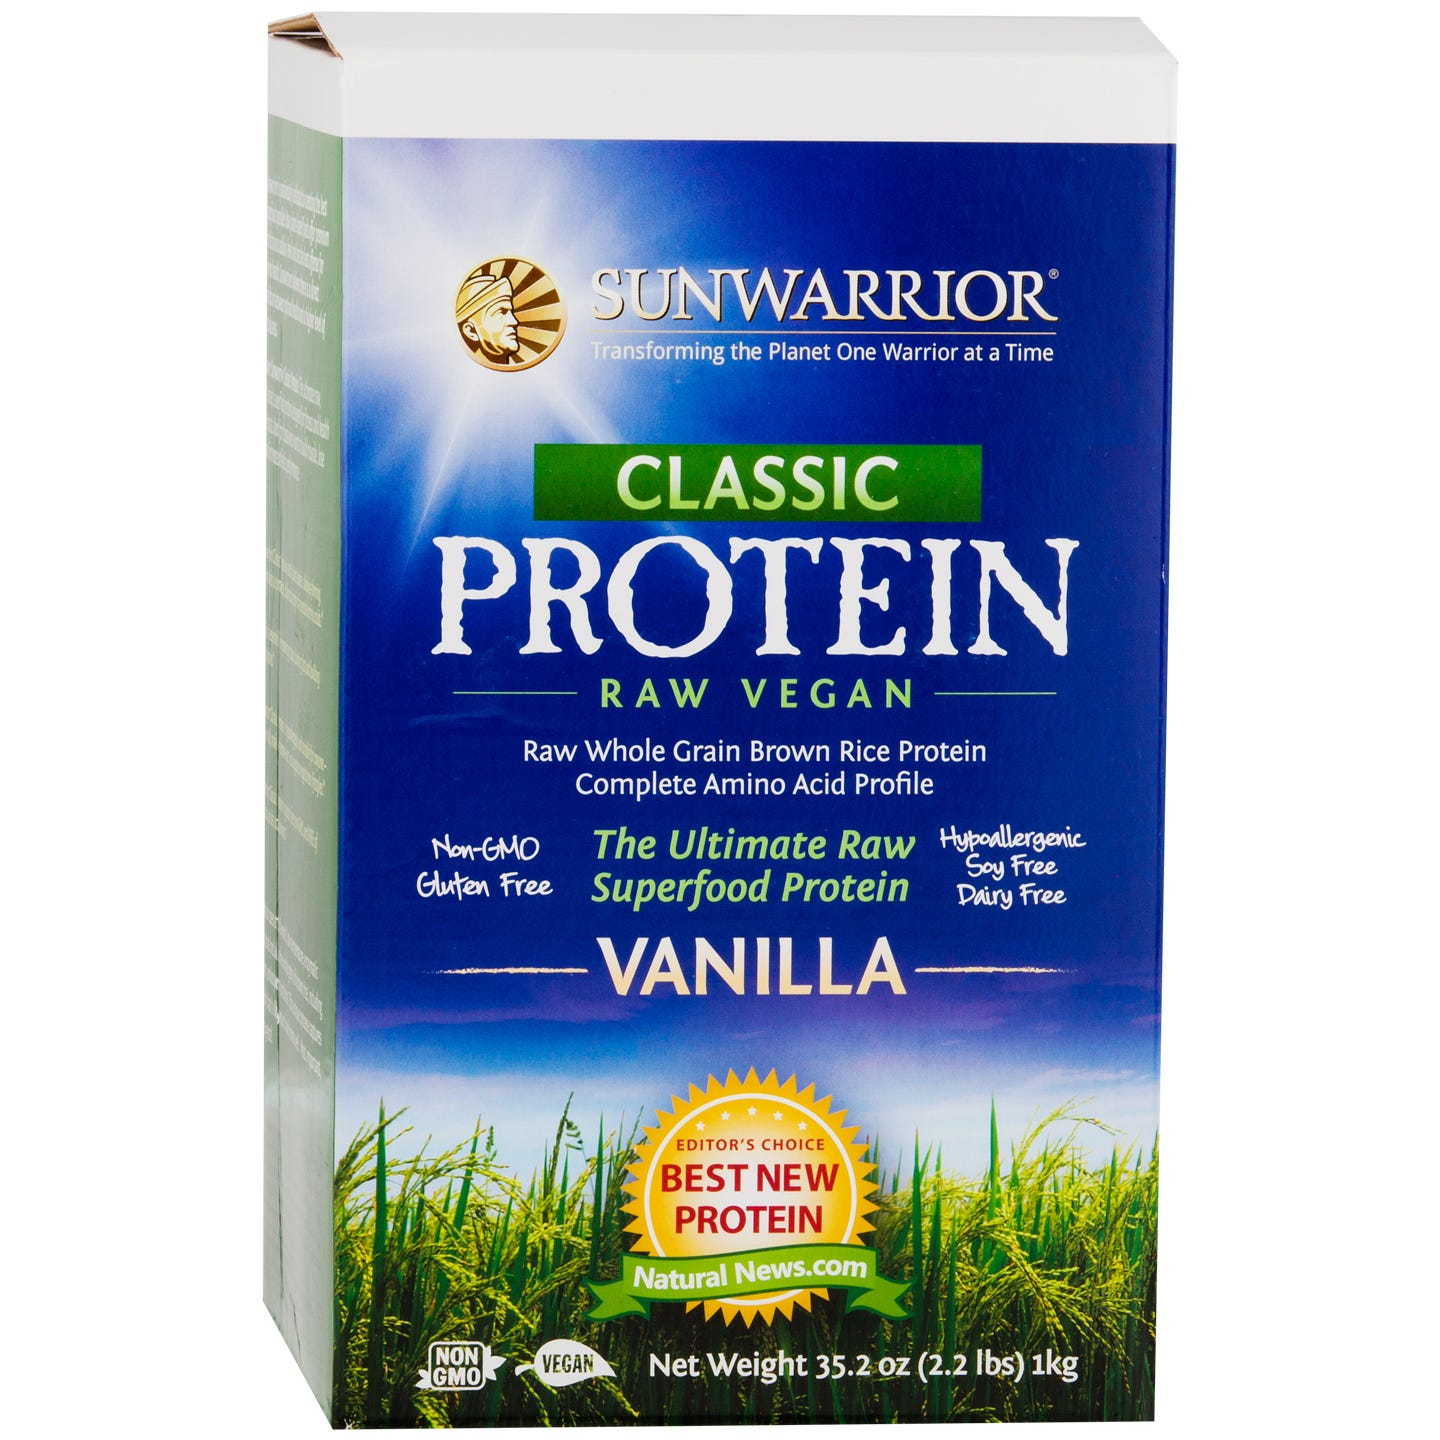 Classic Protein Vanilla 2.2lb, Sunwarrior - Rapid Diet Weight Loss Products Shop